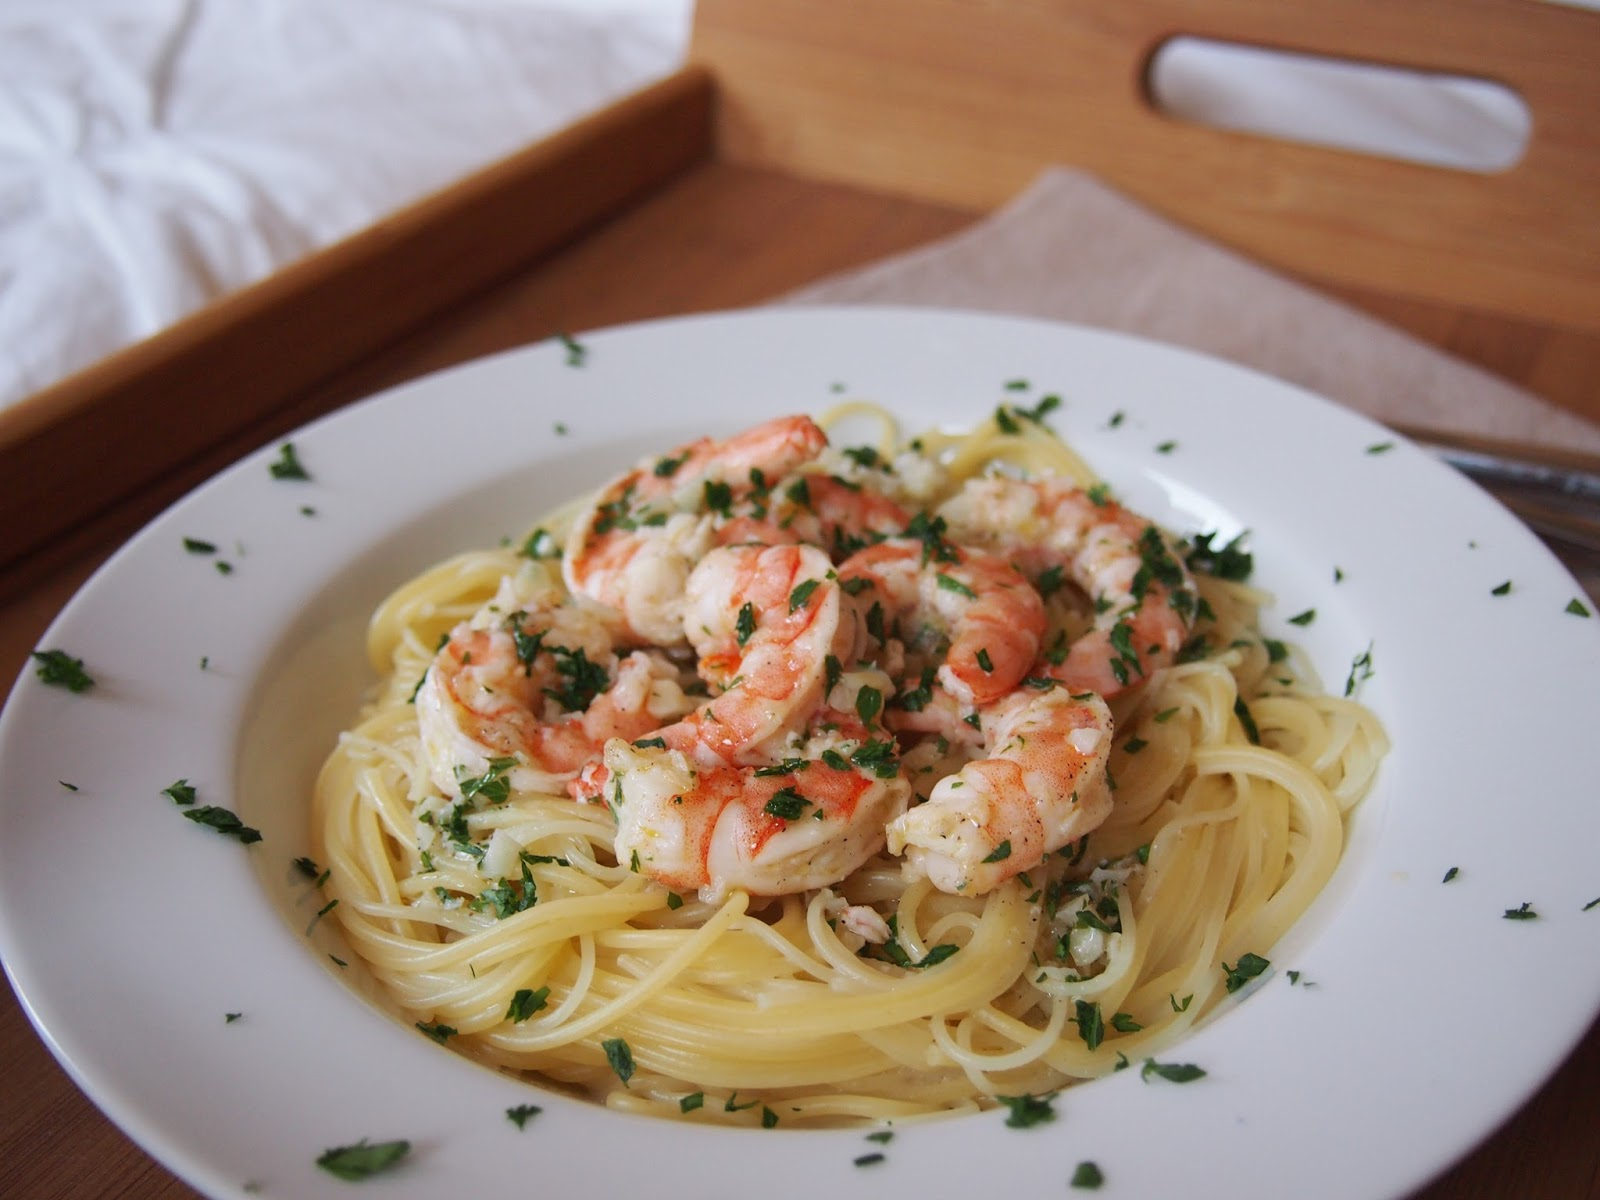 Cooking with Kale: Baked Shrimp Scampi